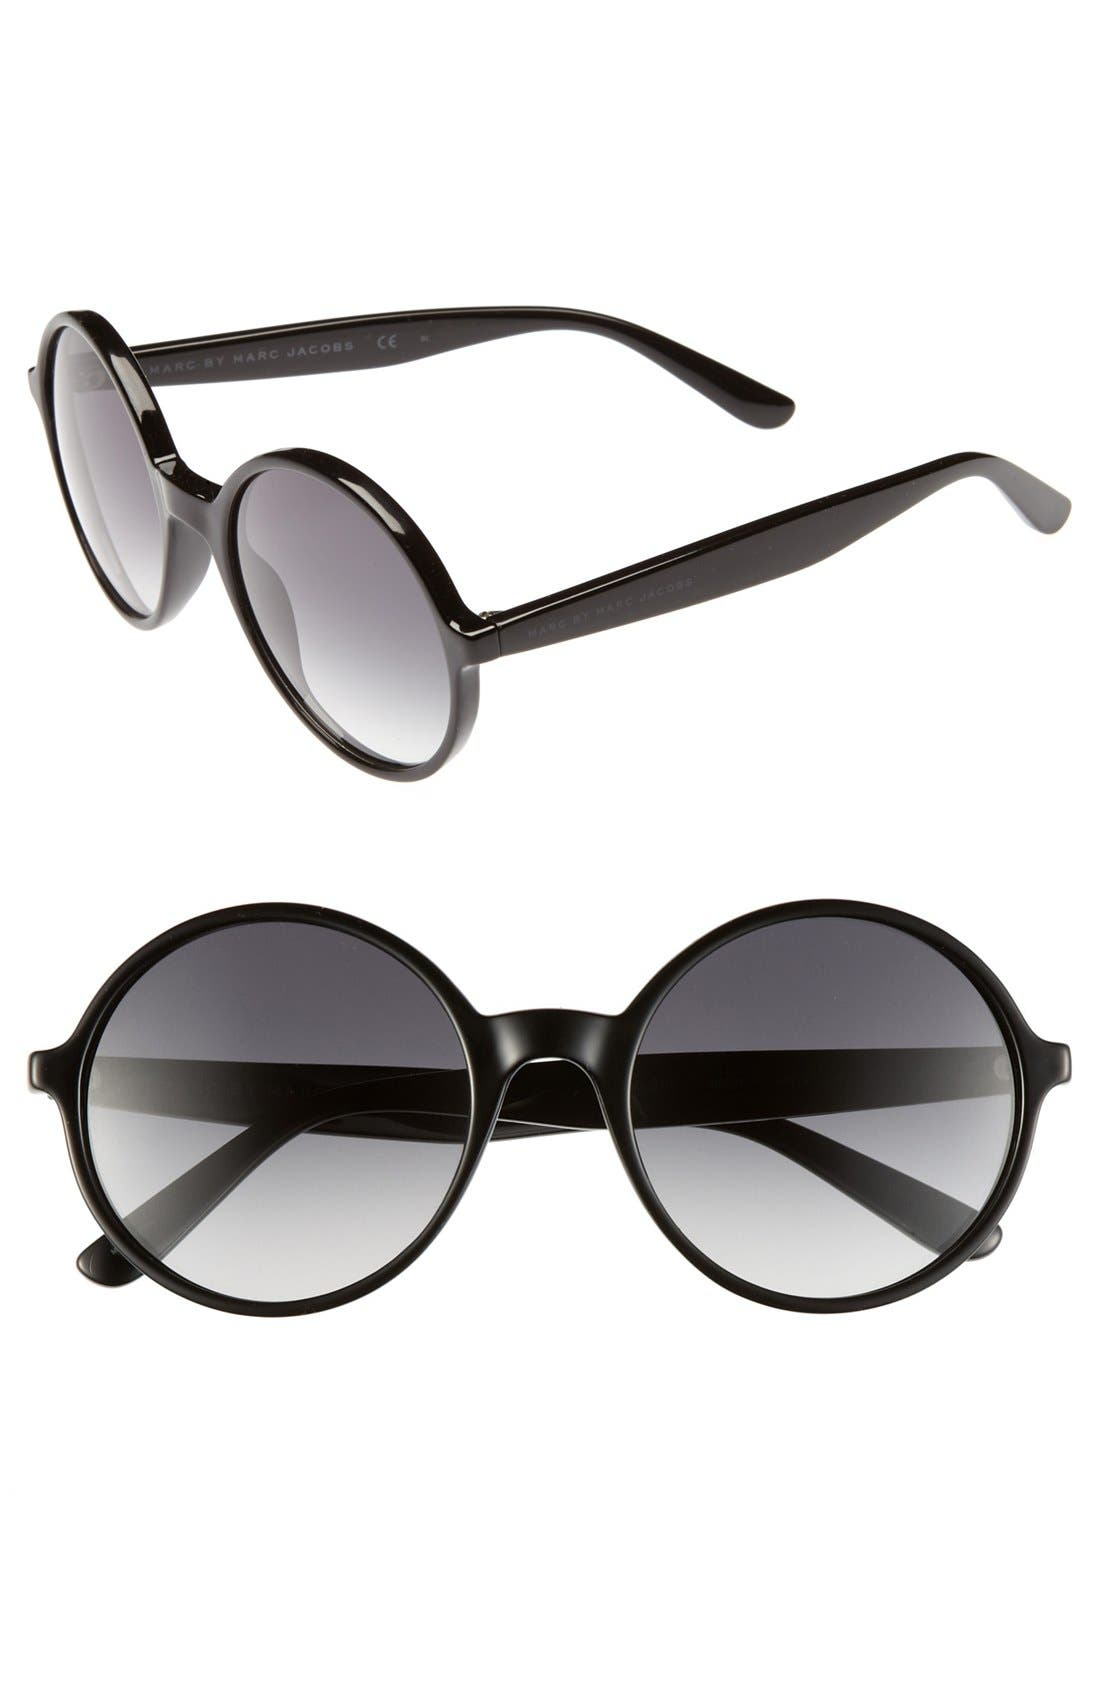 MARC BY MARC JACOBS 54mm Retro Sunglasses, Main, color, 001